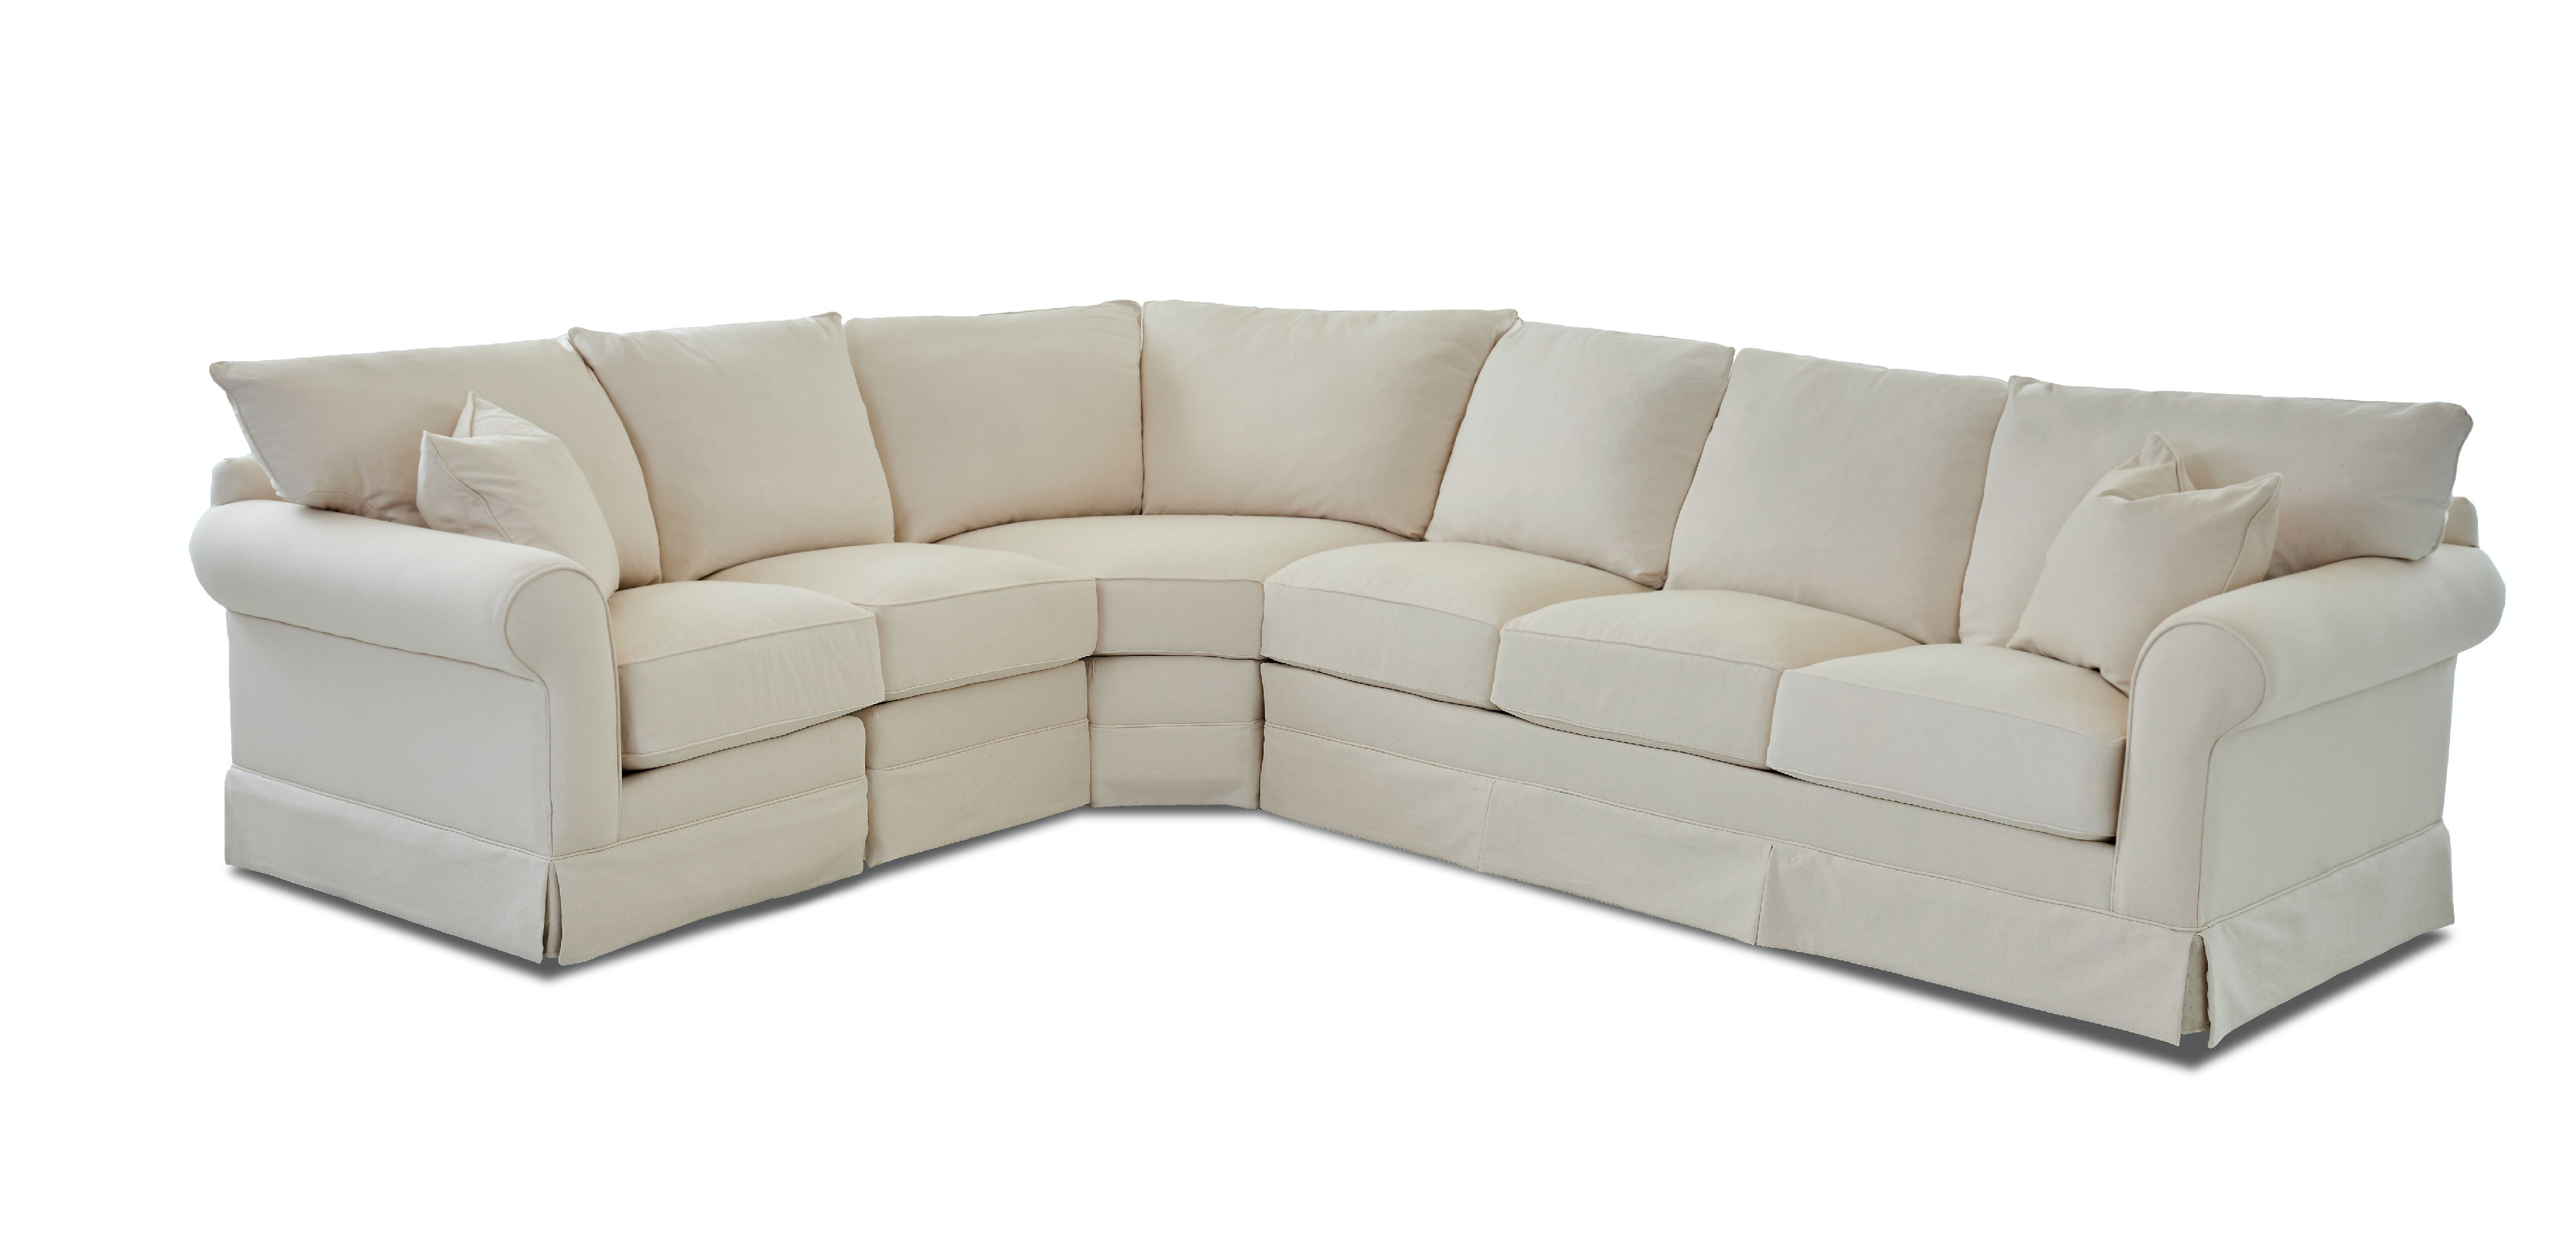 Klaussner Living Room Jenny Sectional D16700 Sect Hamilton Sofa